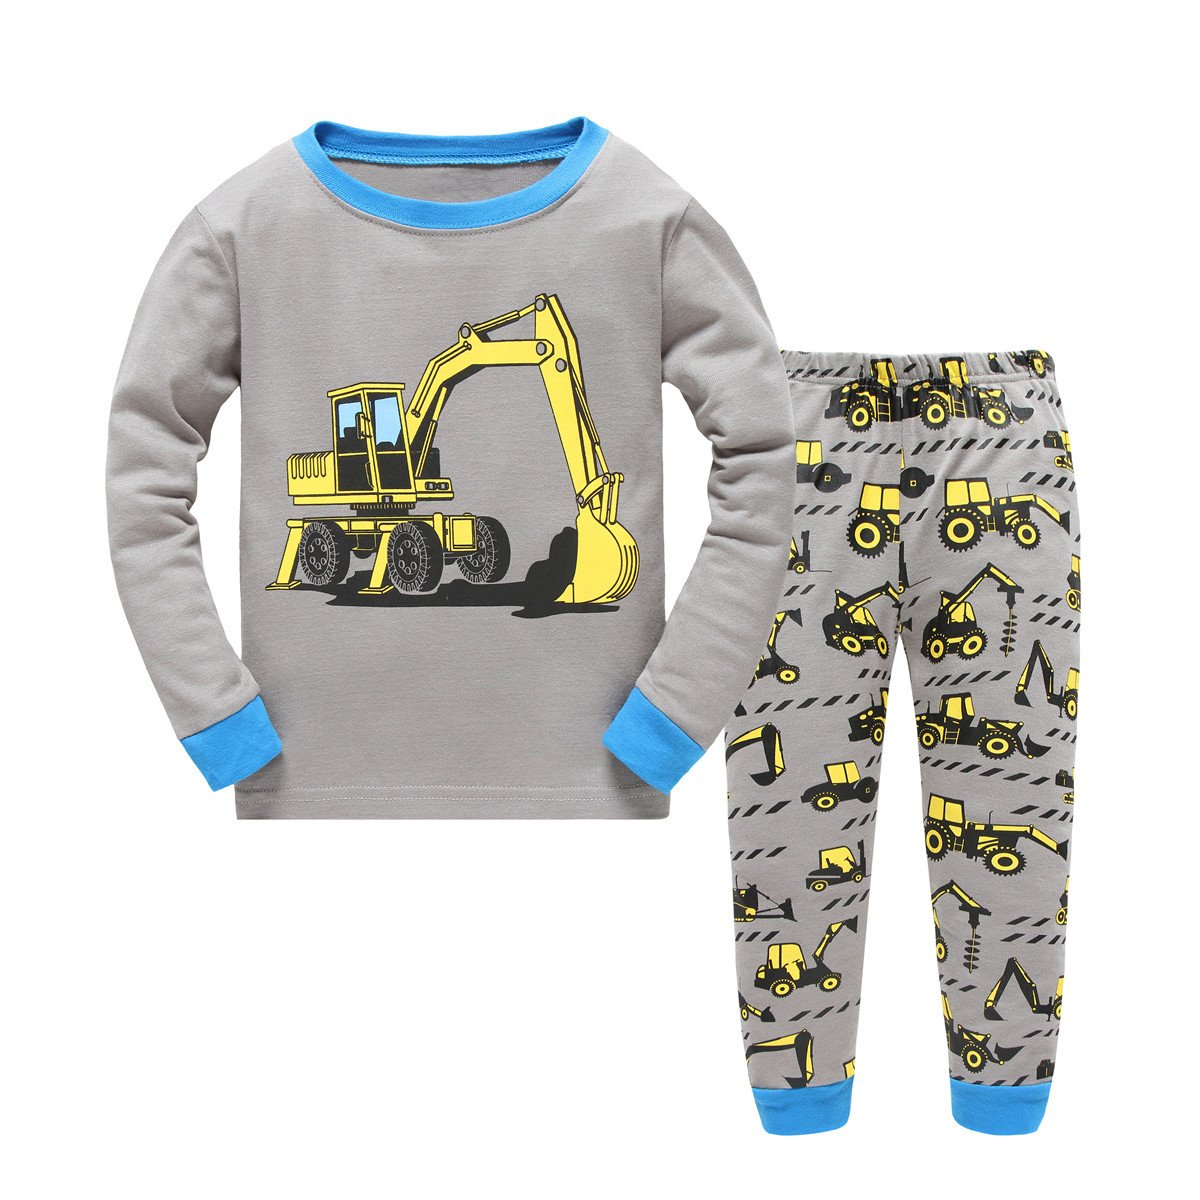 Kids Excavator Pajamas 100% Cotton Long sleeves Toddler Sleepwear Pants 2 Pieces for Children Size 2Y-7Y (2T, Gray)